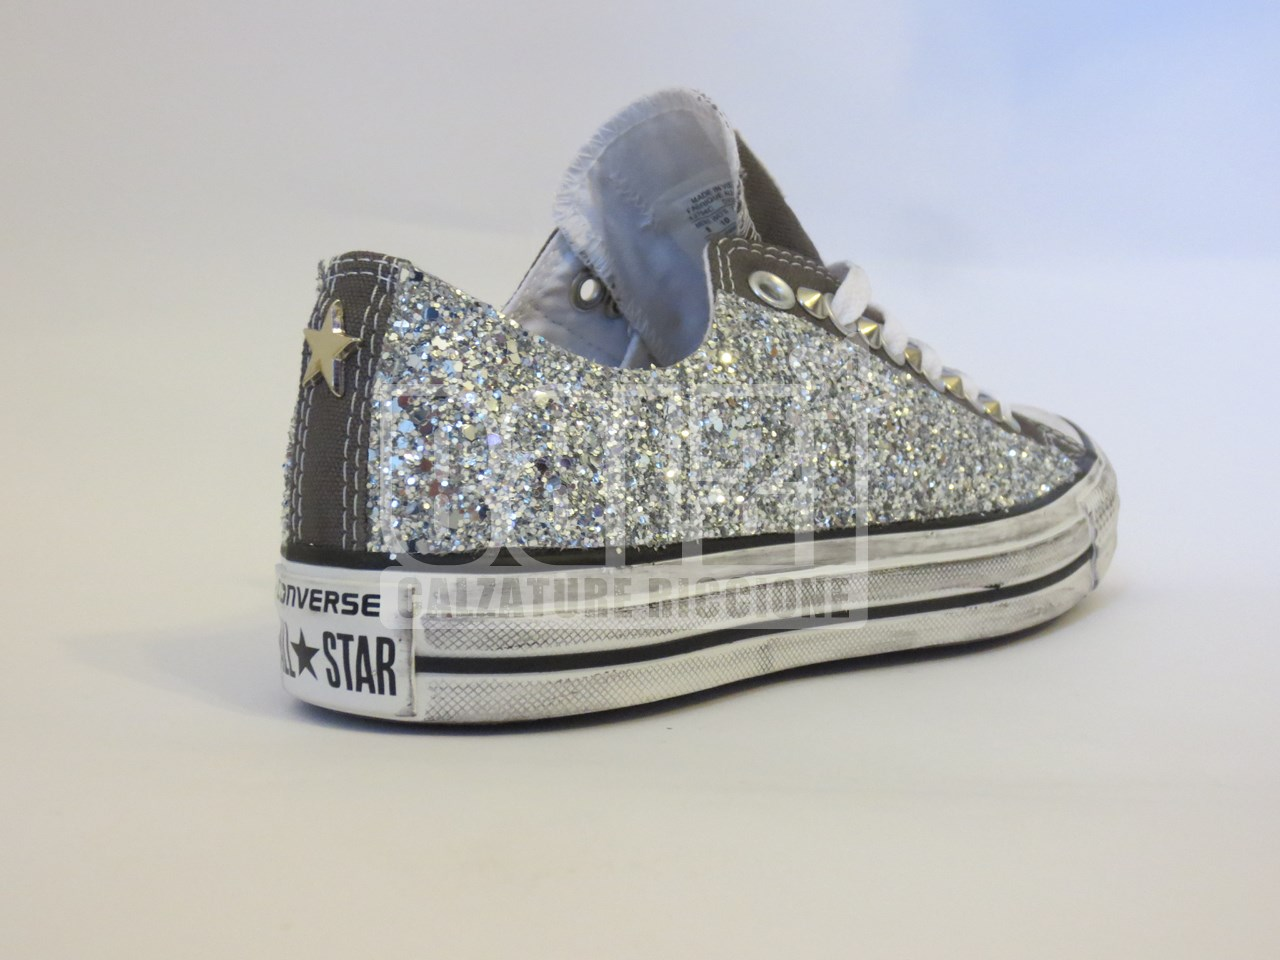 converse all star basse grigie